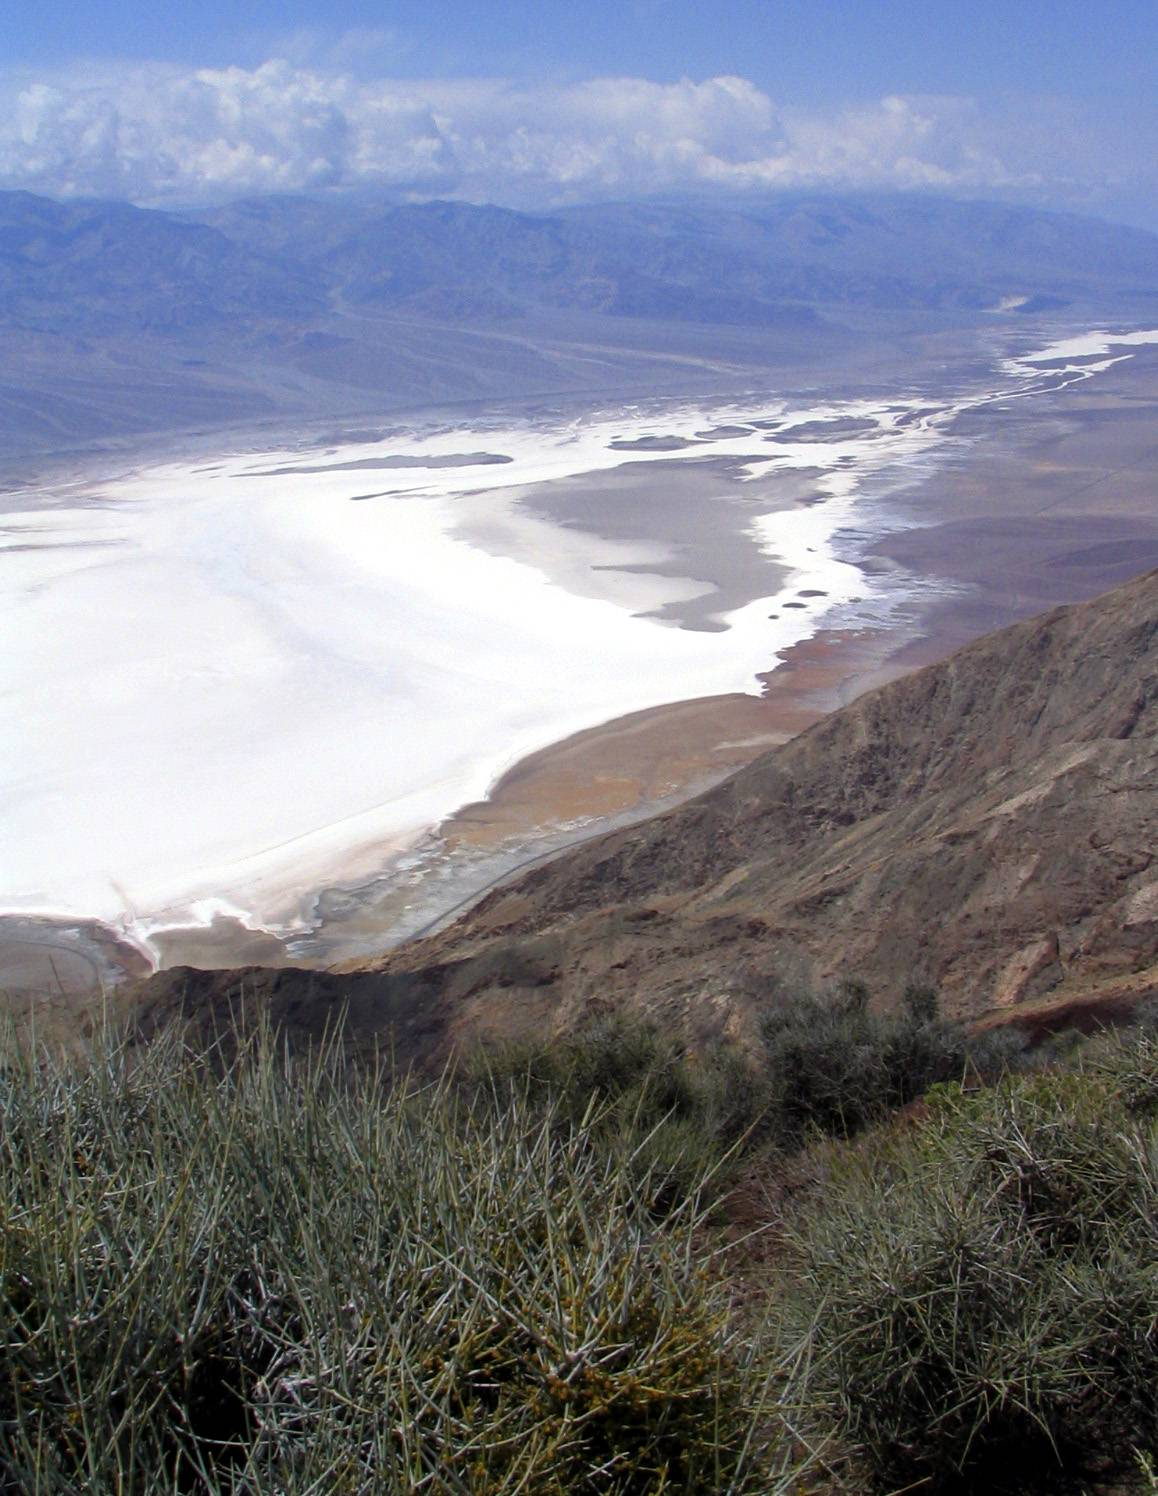 Dantes View overlook is one of the most popular views of Death Valley, Calif.